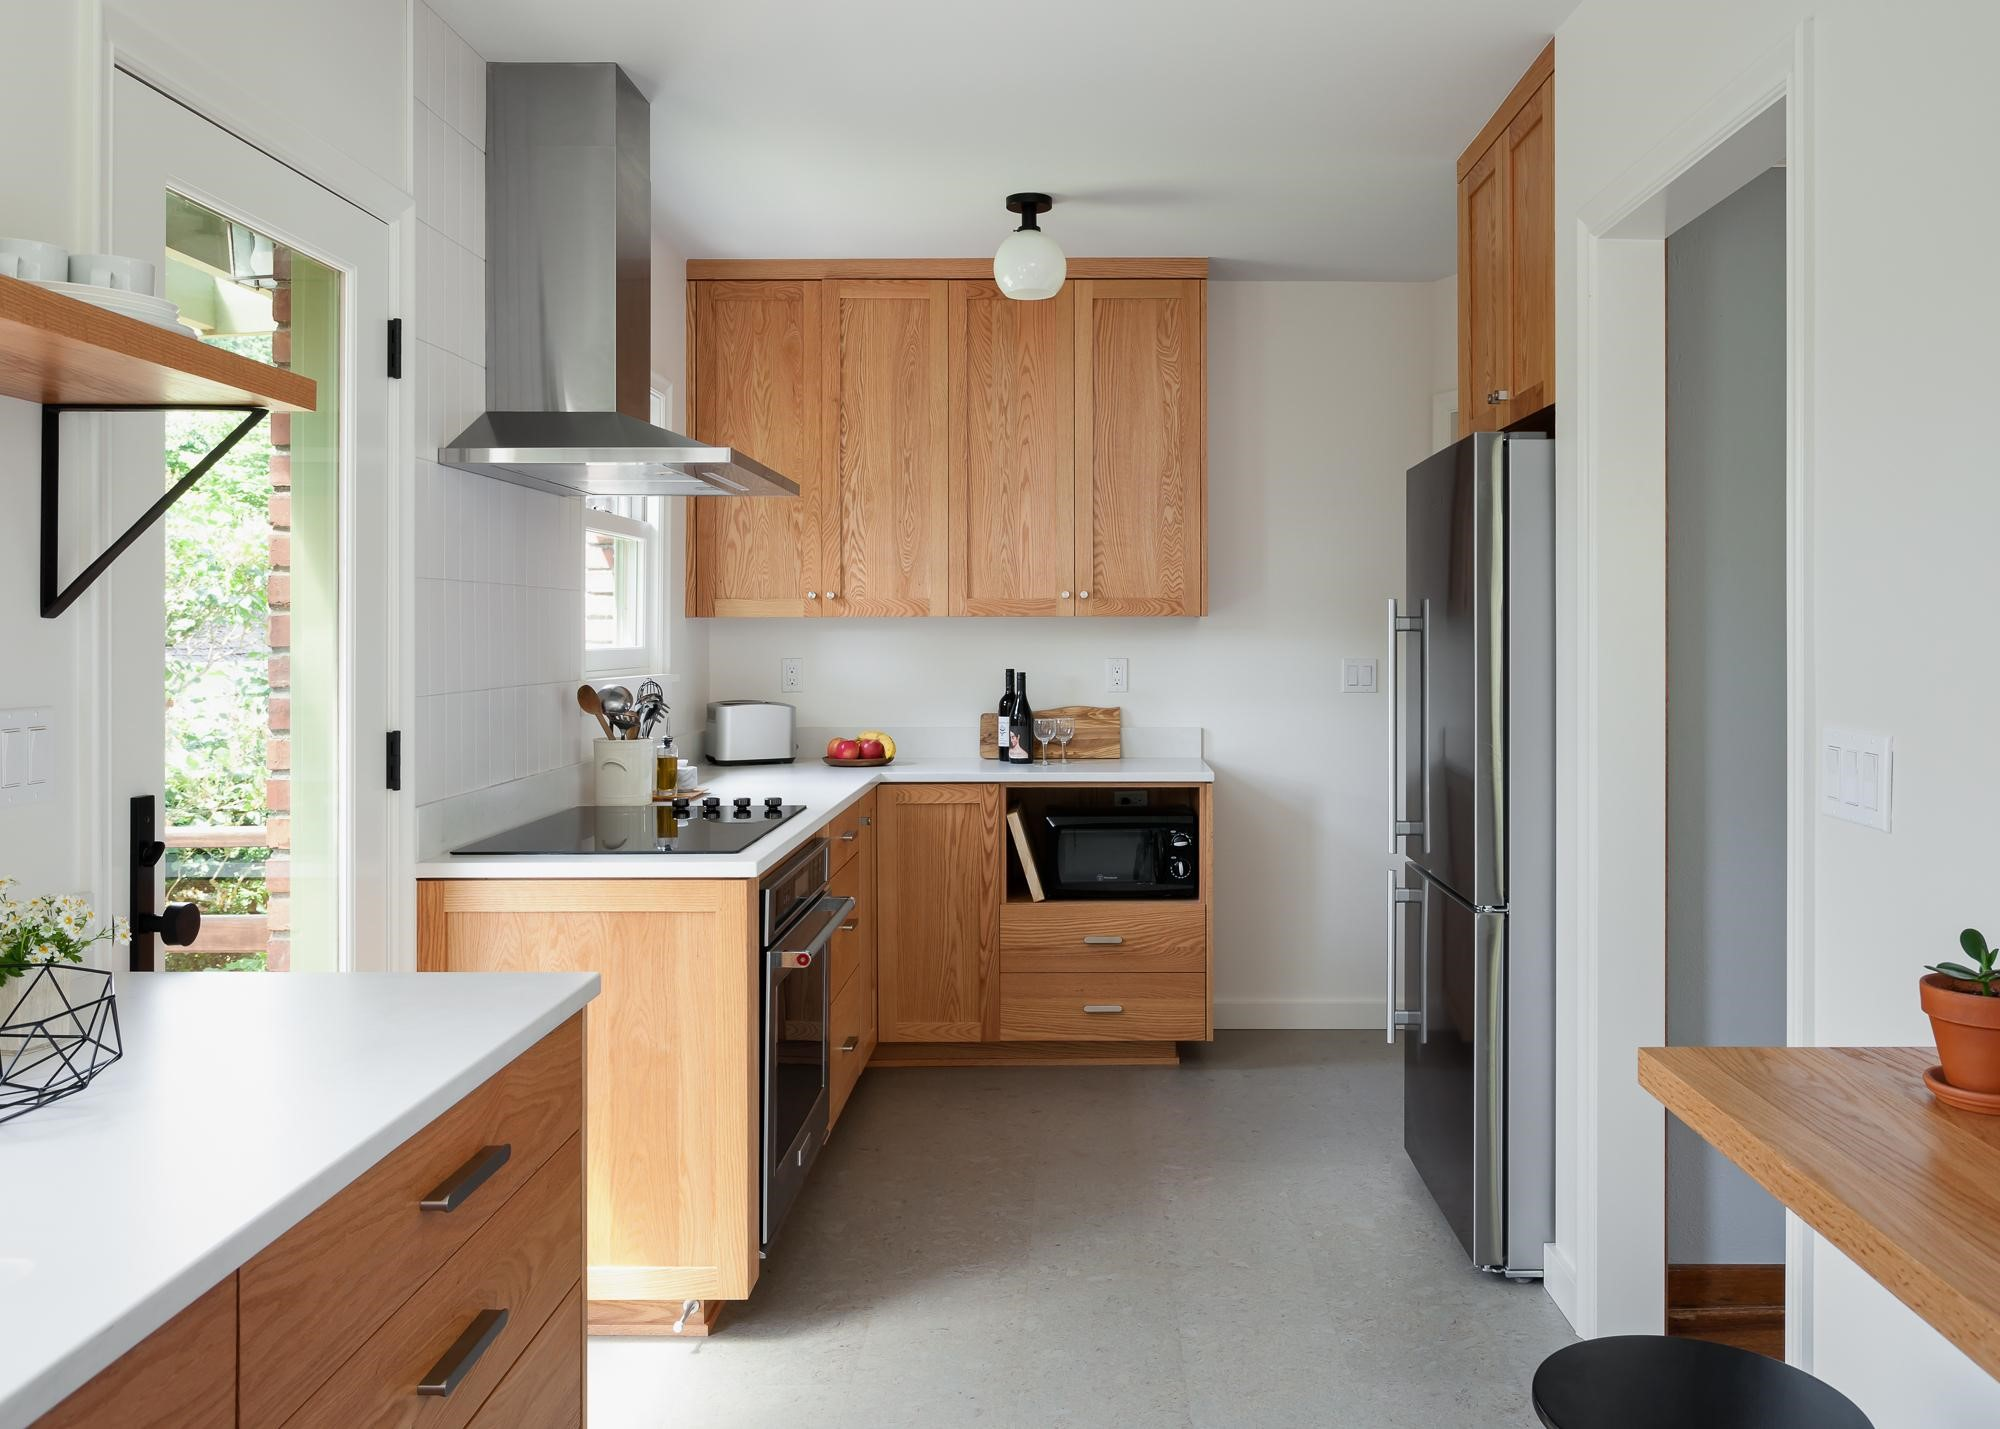 Diy Your Kitchen With Ready To Assemble Kitchen Cabinets